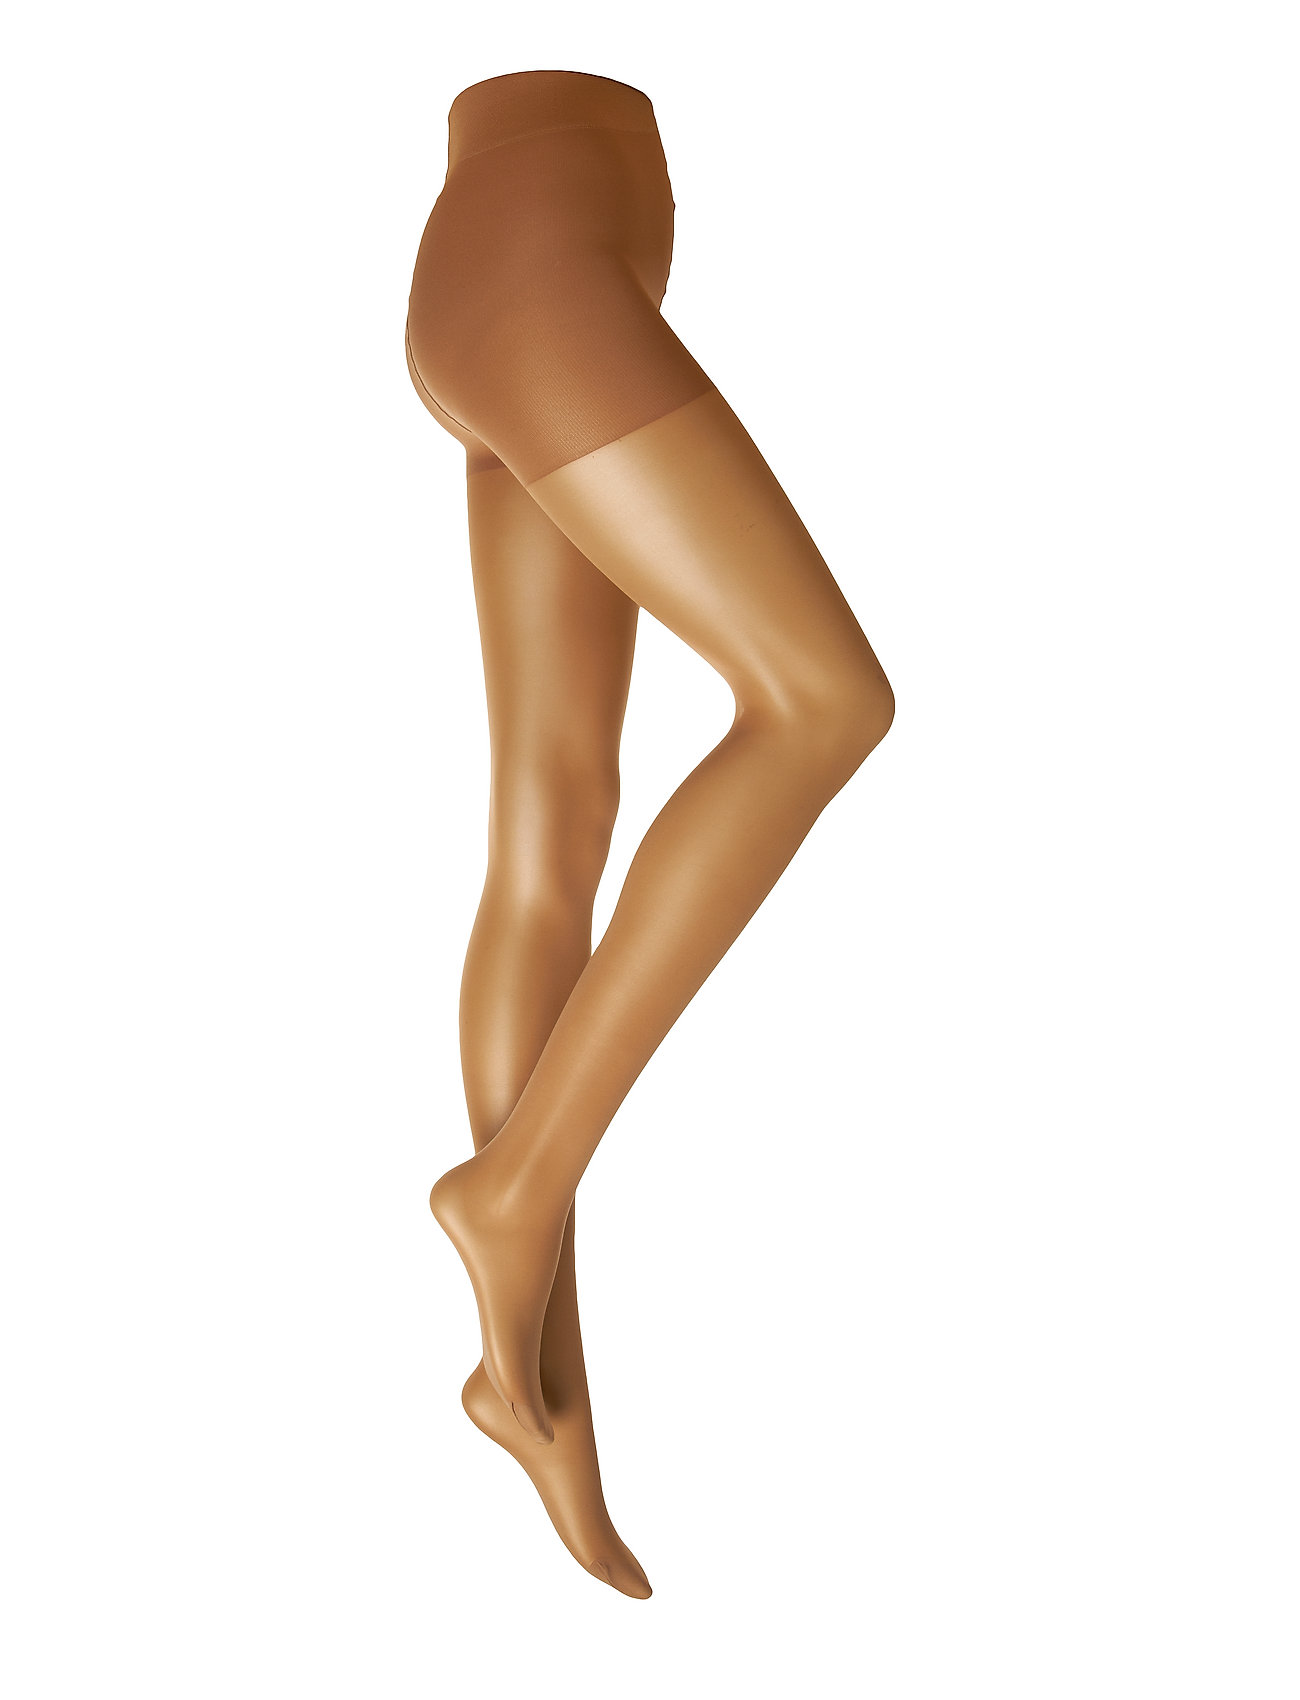 Swedish Stockings Irma Support tights 30D - NUDE